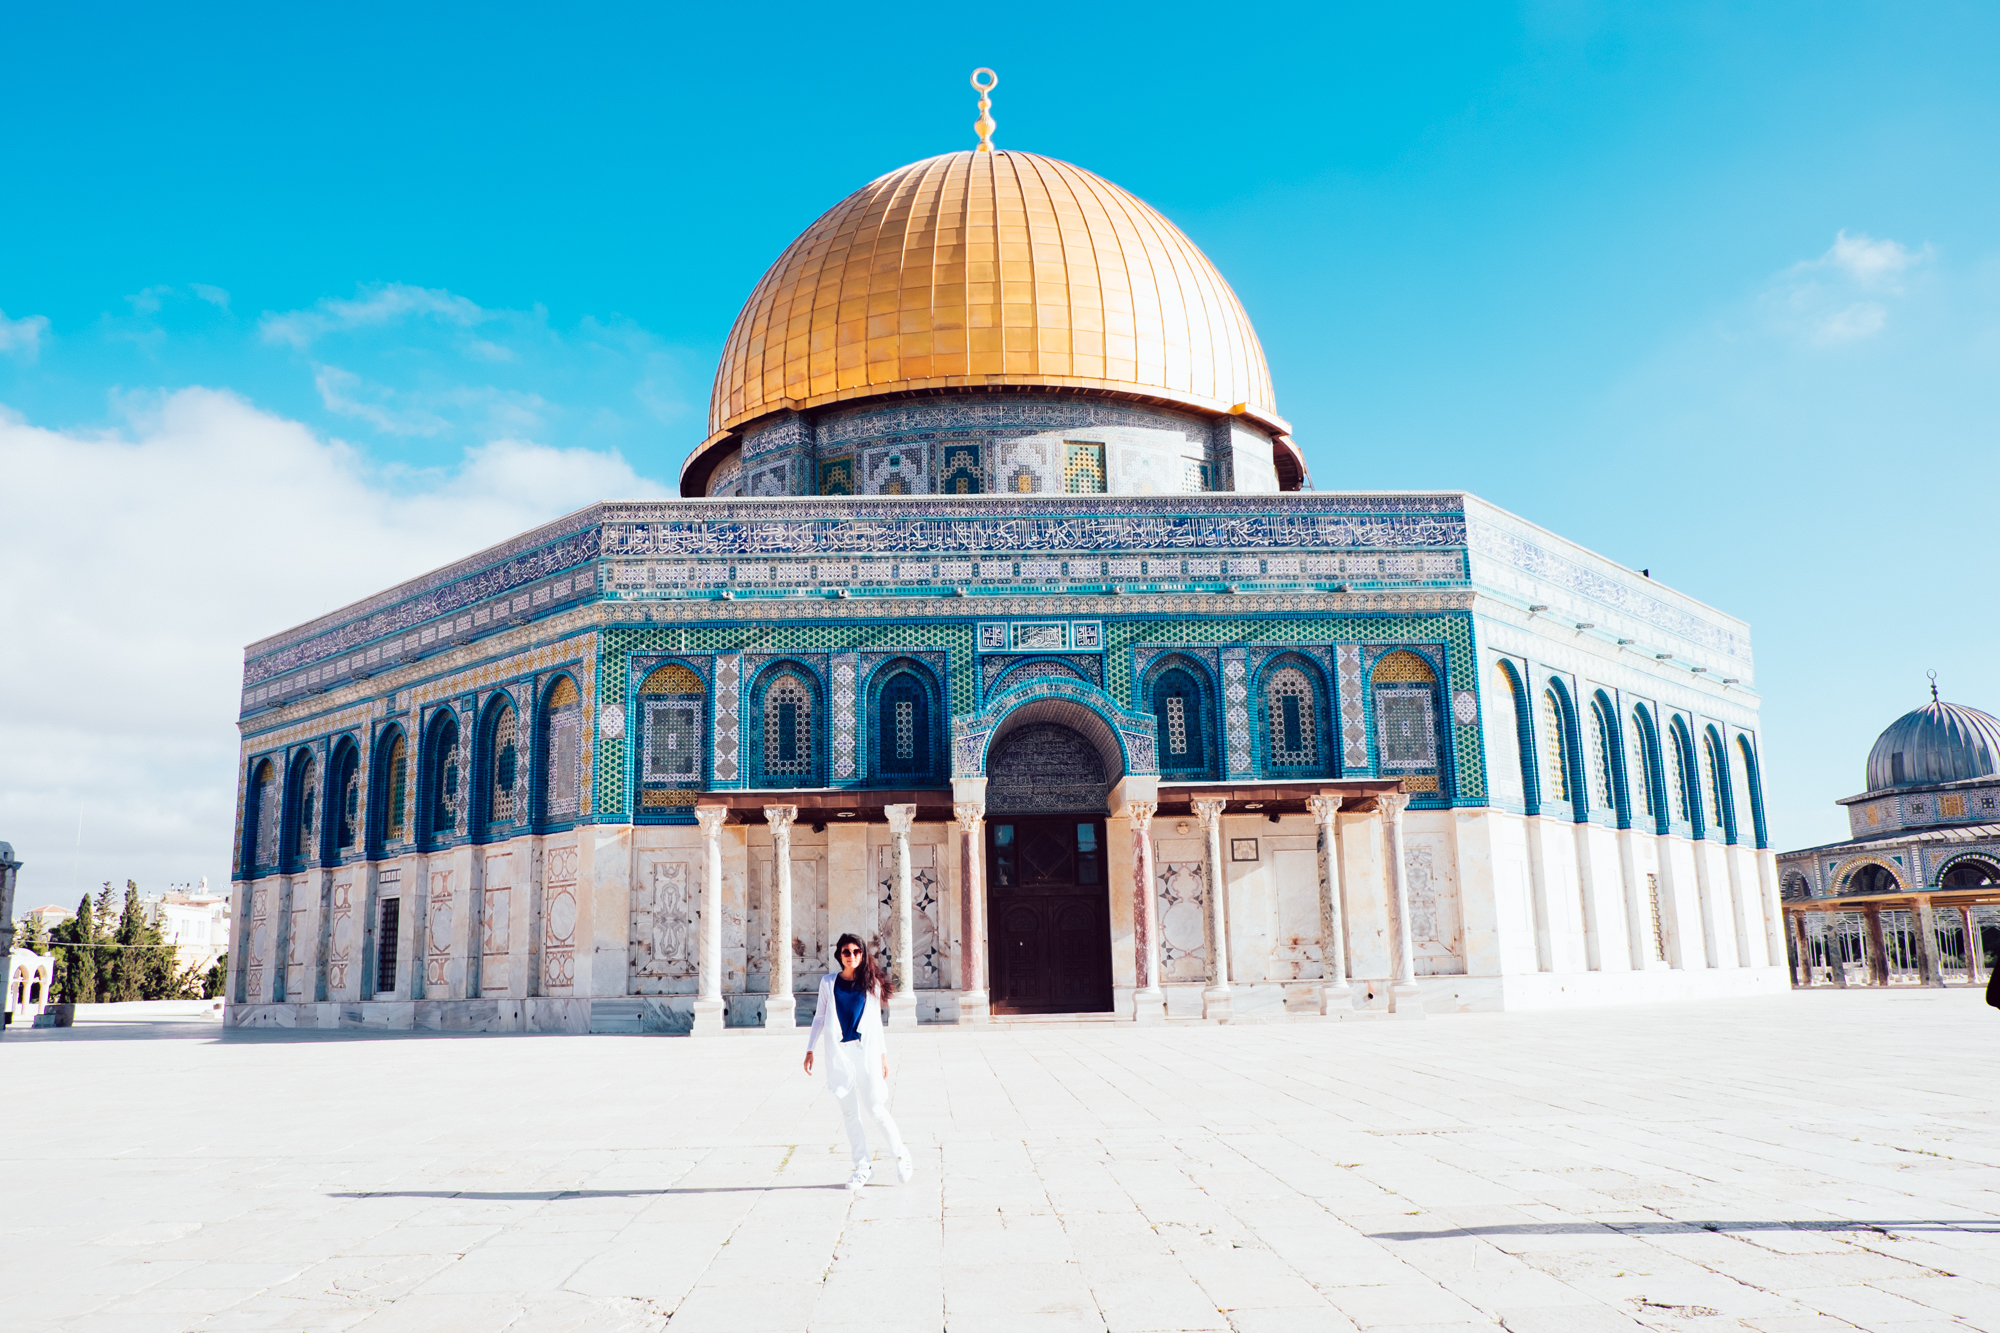 Before the rush at Temple Mount